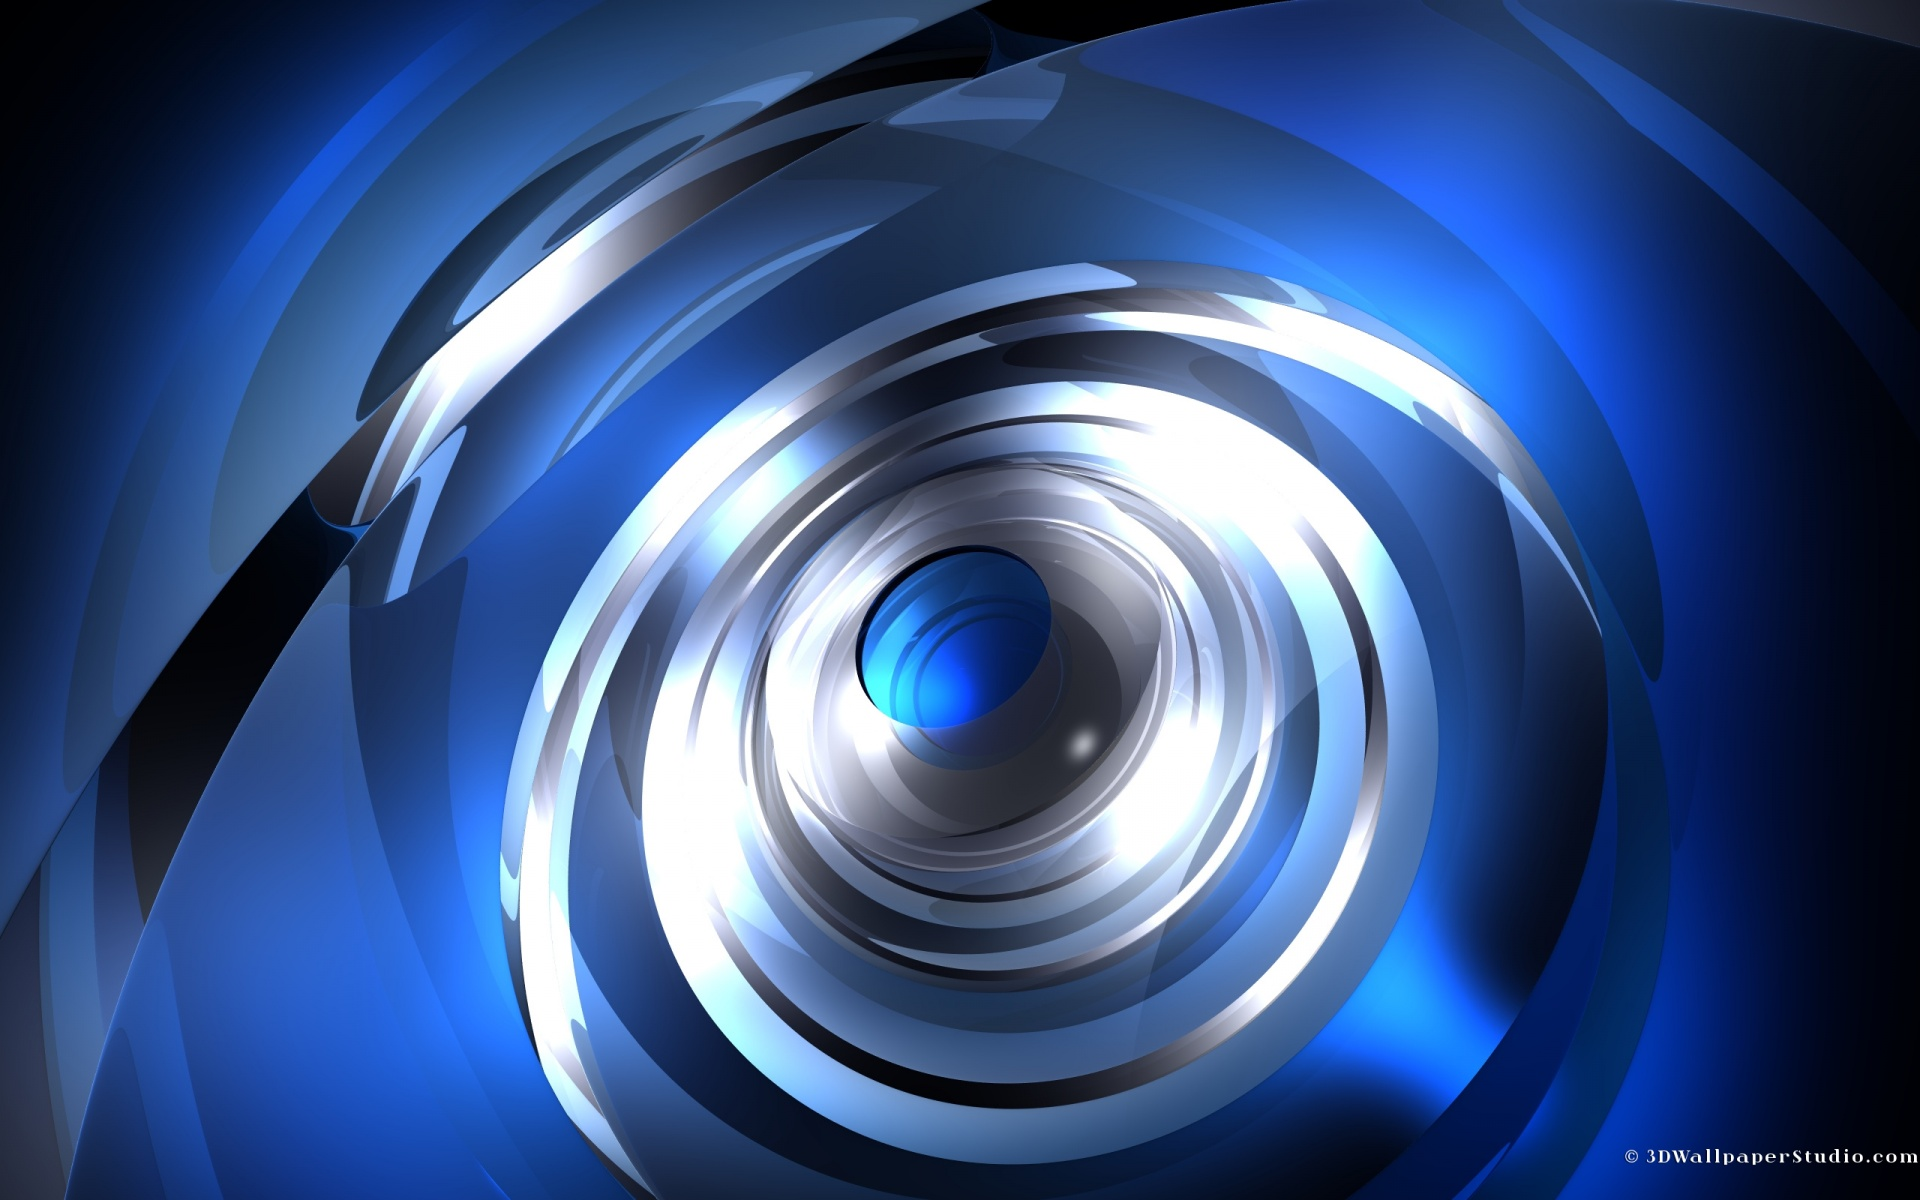 Moving blue 3d abstract wallpaper in 1920x1200 screen resolution 1920x1200